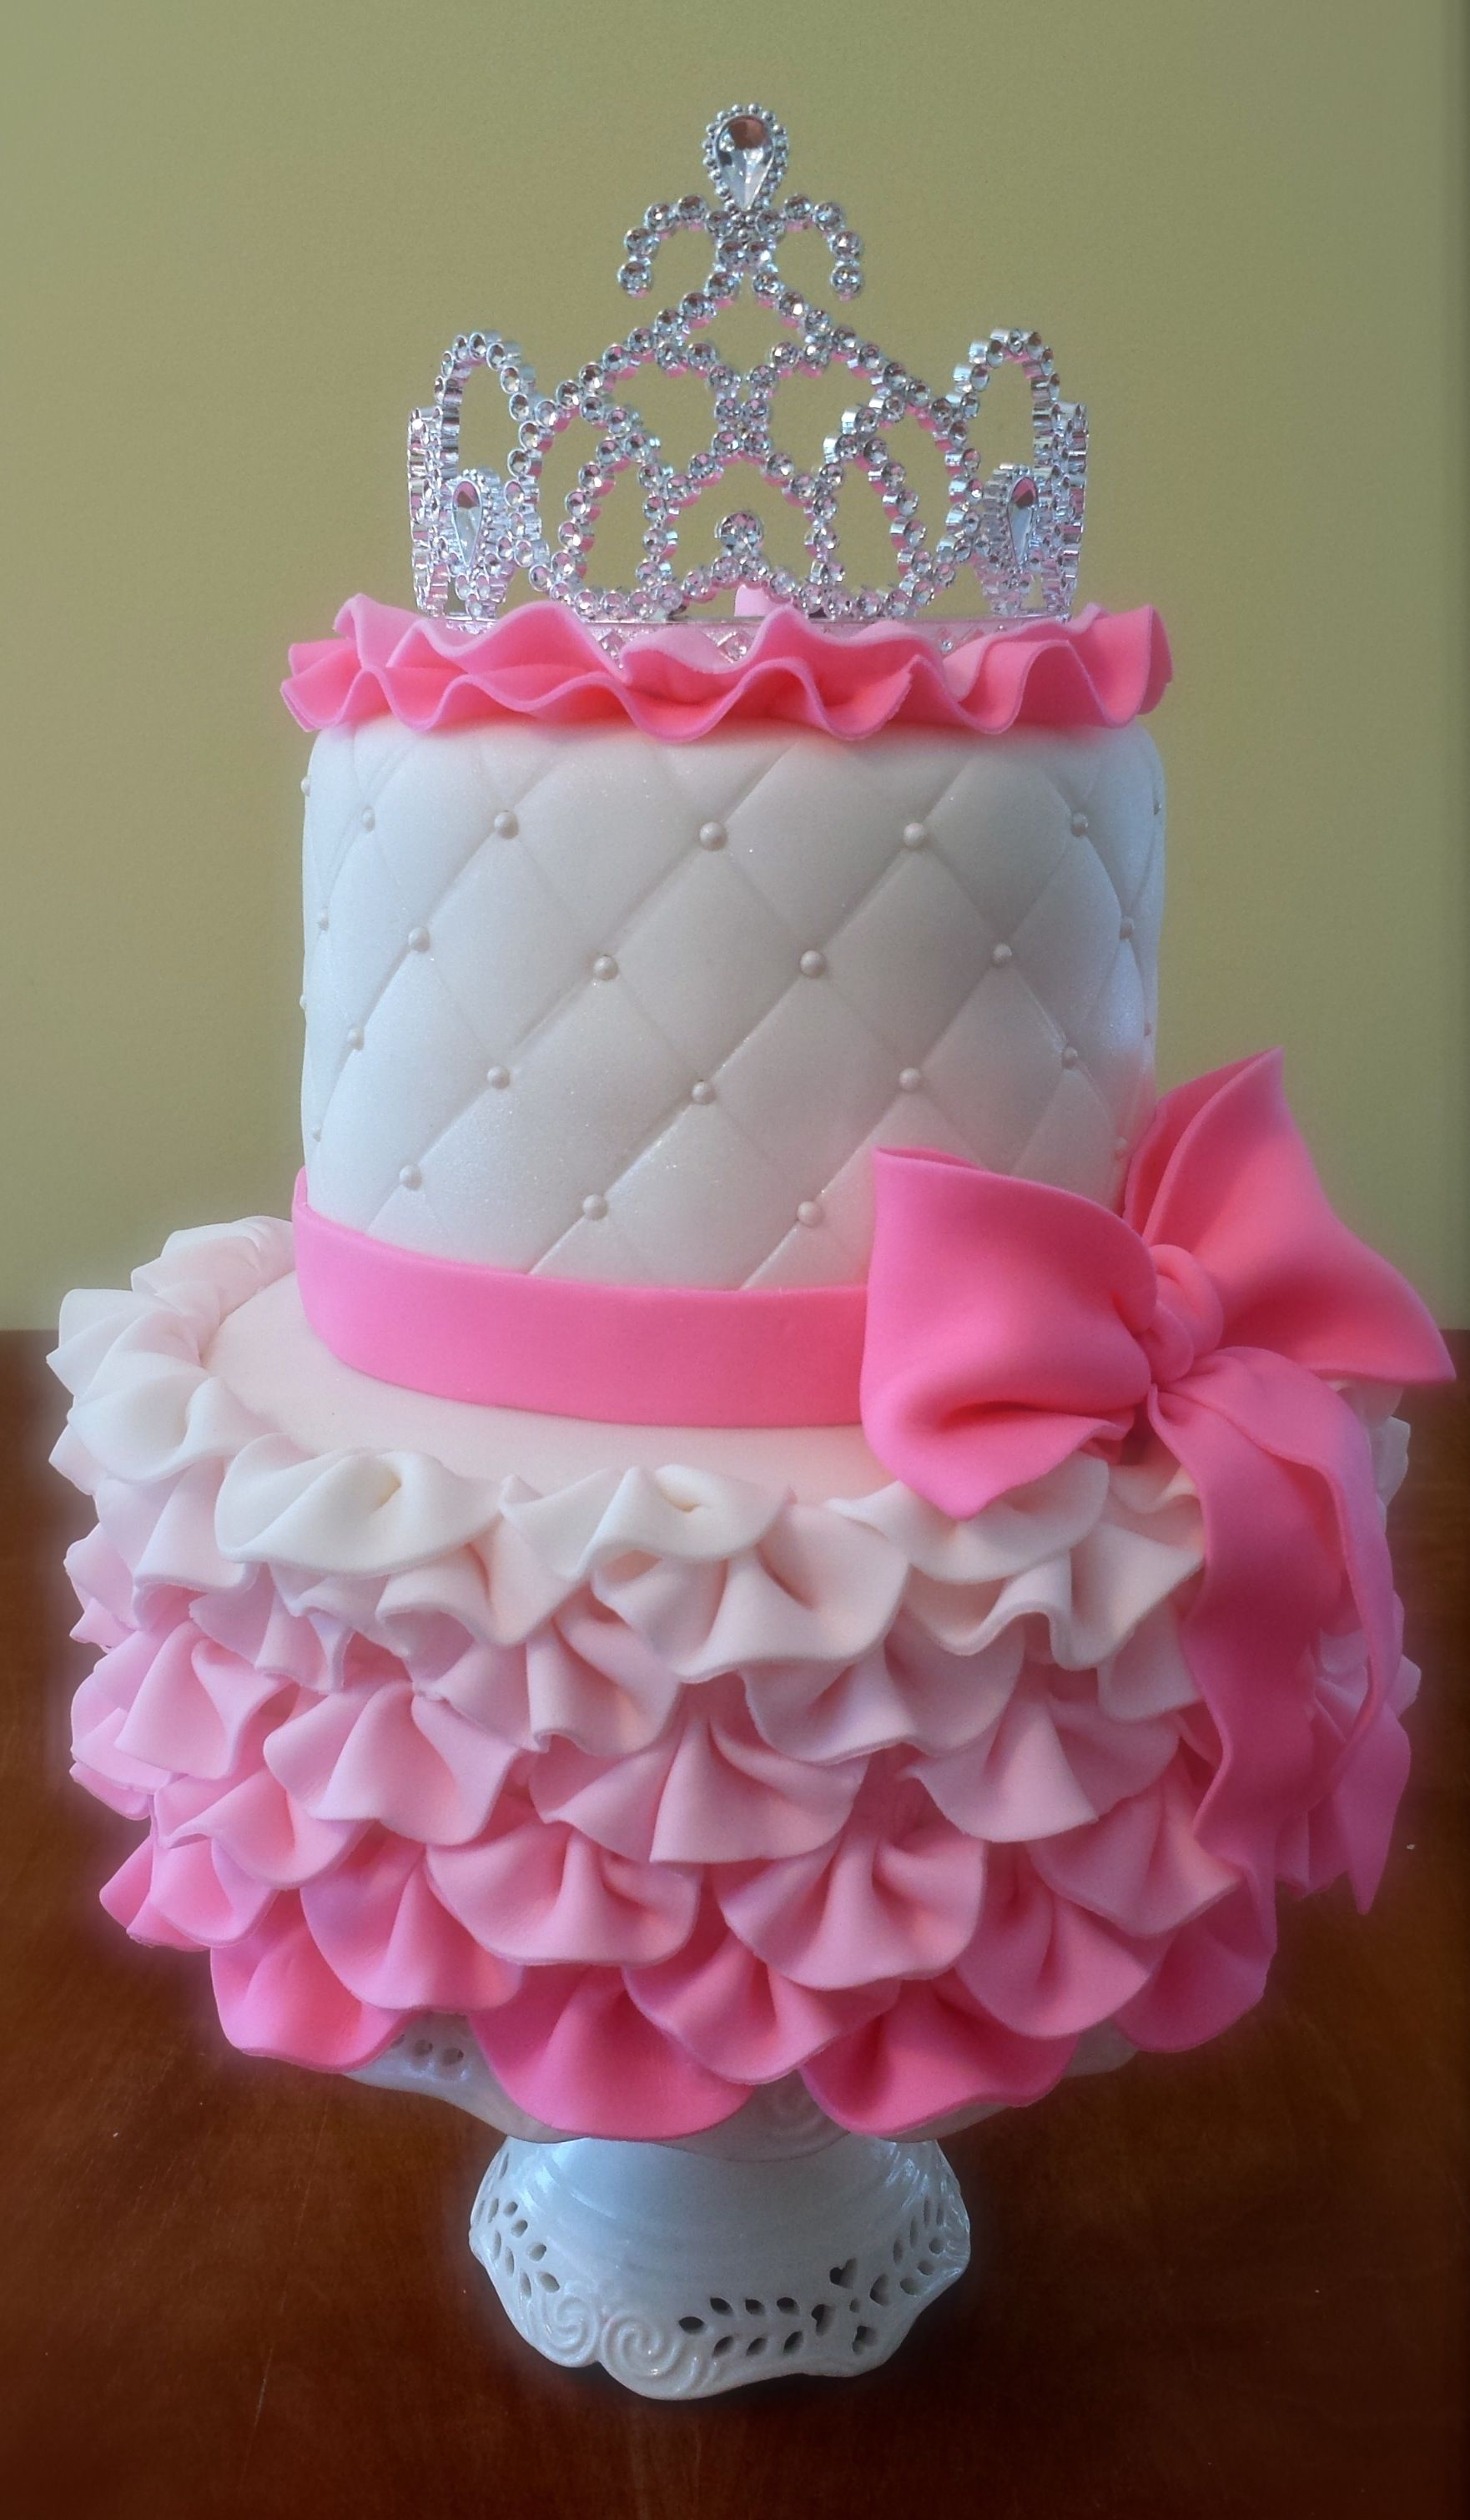 Princess Cake Design : PRINCESS CAKE IDEAS Cake tutorial, Princess and Cake